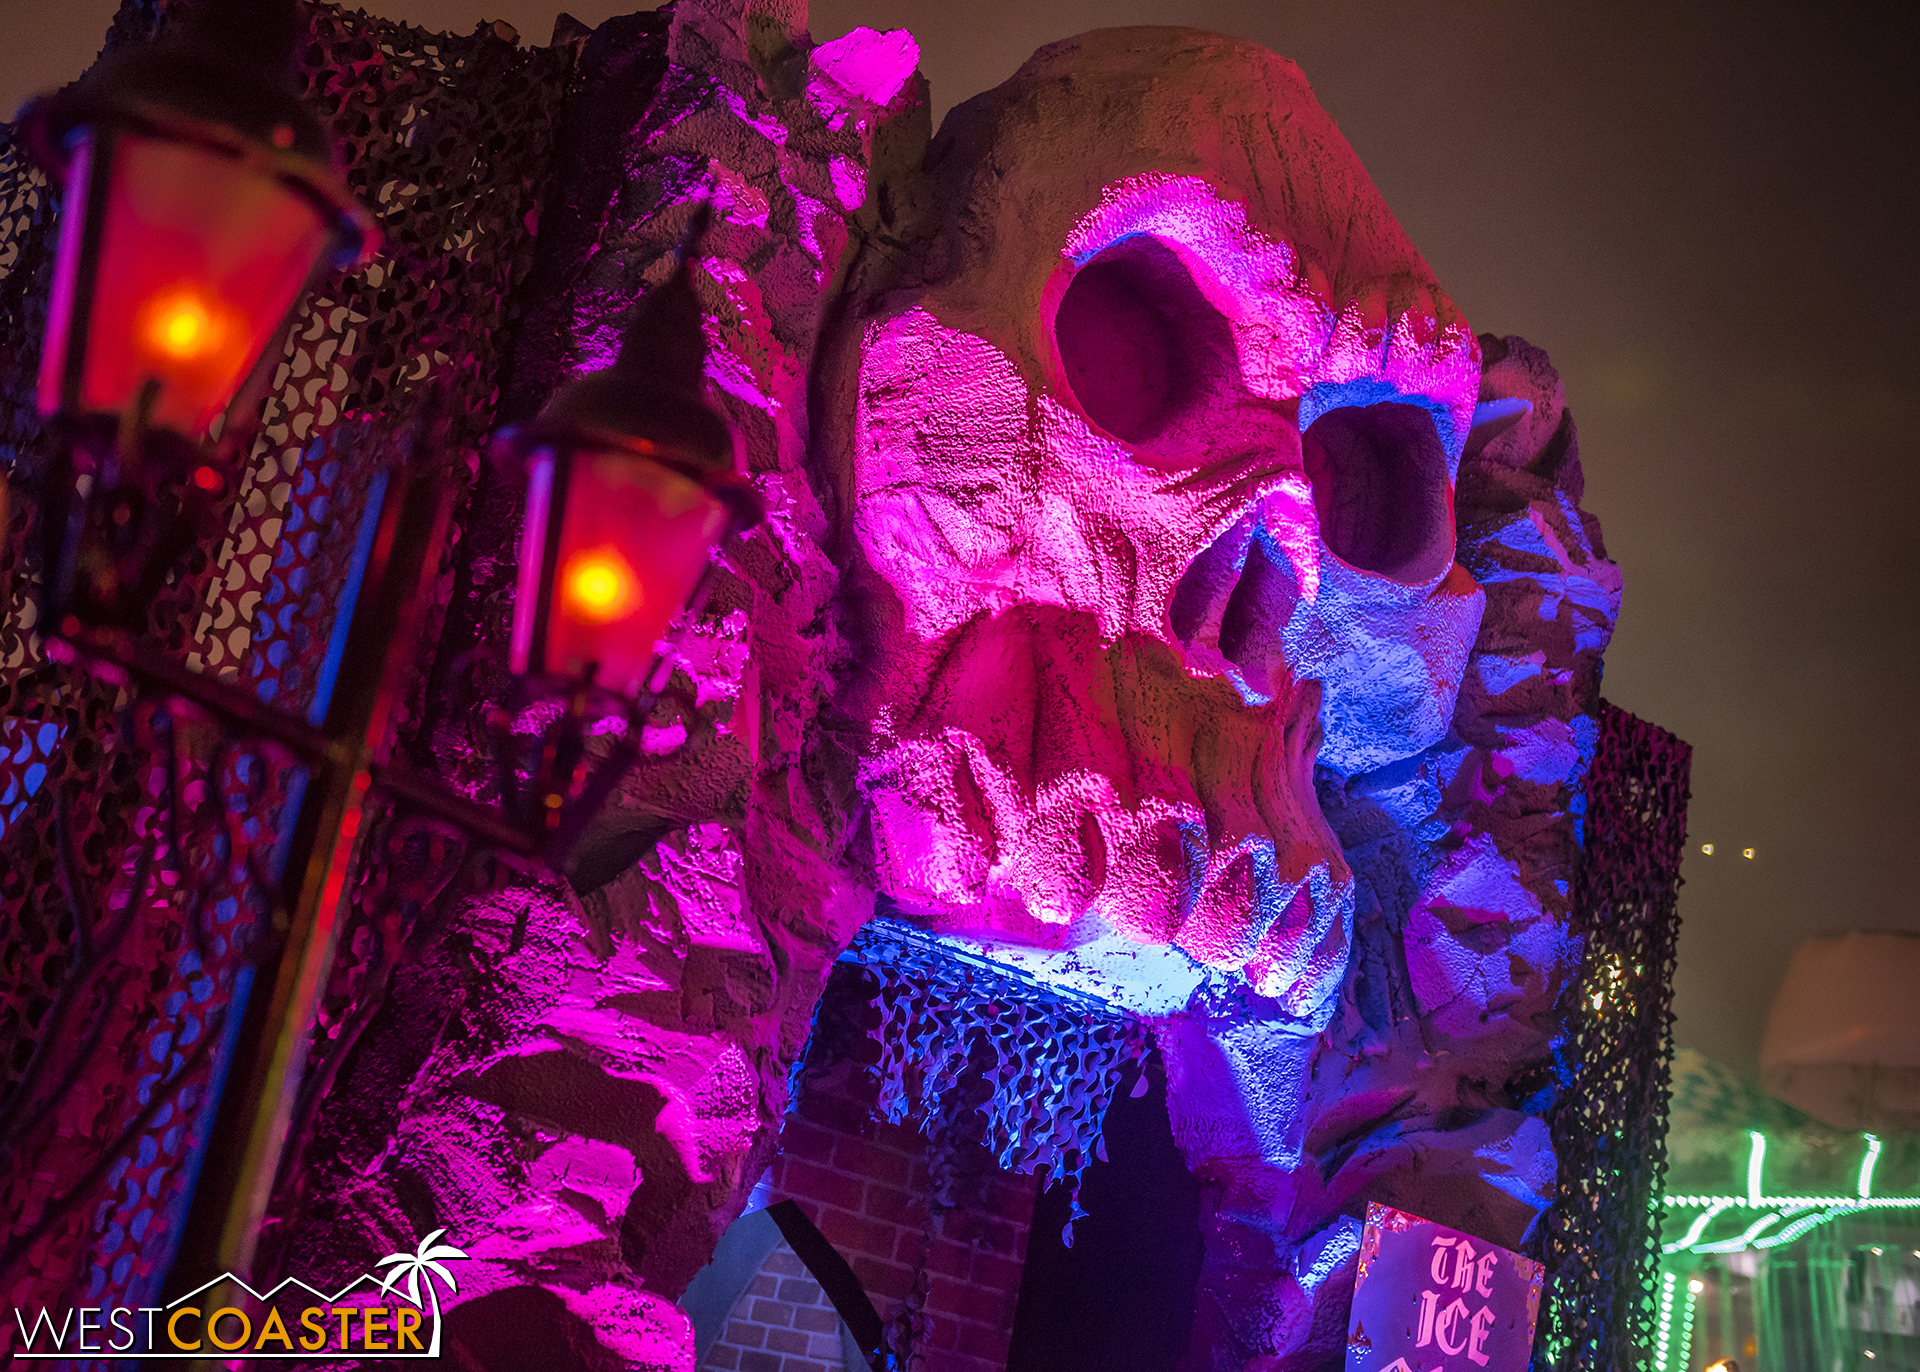 This magenta skull marks the Ice Cave ice bar.